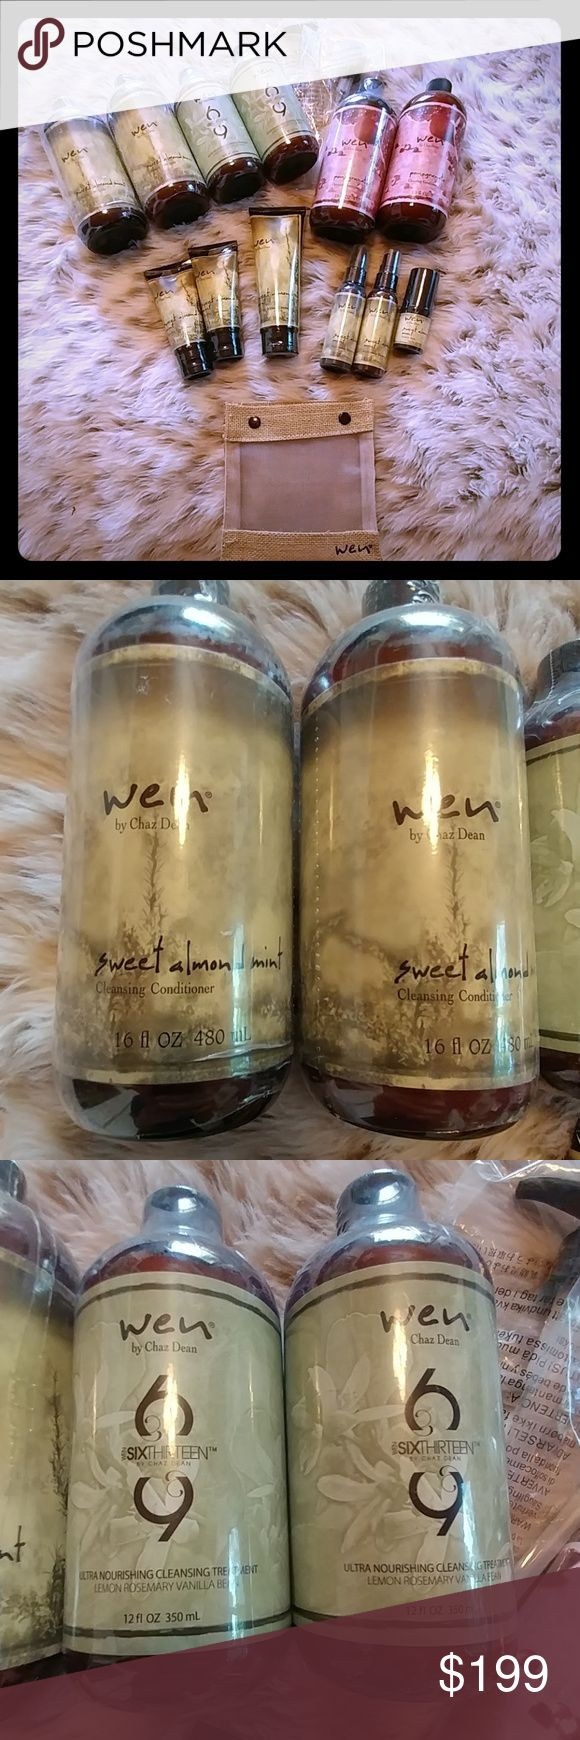 Brand New Wen Hair Care Lot......Great Deal! In this lot of Wen by Chaz Dean you will be getting 15 items. 2- Sweet Almond Mint Cleansing Conditioners, 2- Ultra Nourishing Cleansing Treatment, 2- Pomegranate Cleansing Conditioners (1 the plastic wrap wripped off but its brand new!), 2- Sweet Almond Mint Cleansing Conditioners 2 fl oz, 1- Sweet Almond Mint Anti-frizz Styling Cream, 2- Sweet Almond Mint Replenishing Treatment Mist, 1-Sweet Almond Mint Texture Balm, 2- Pumps and one travel…